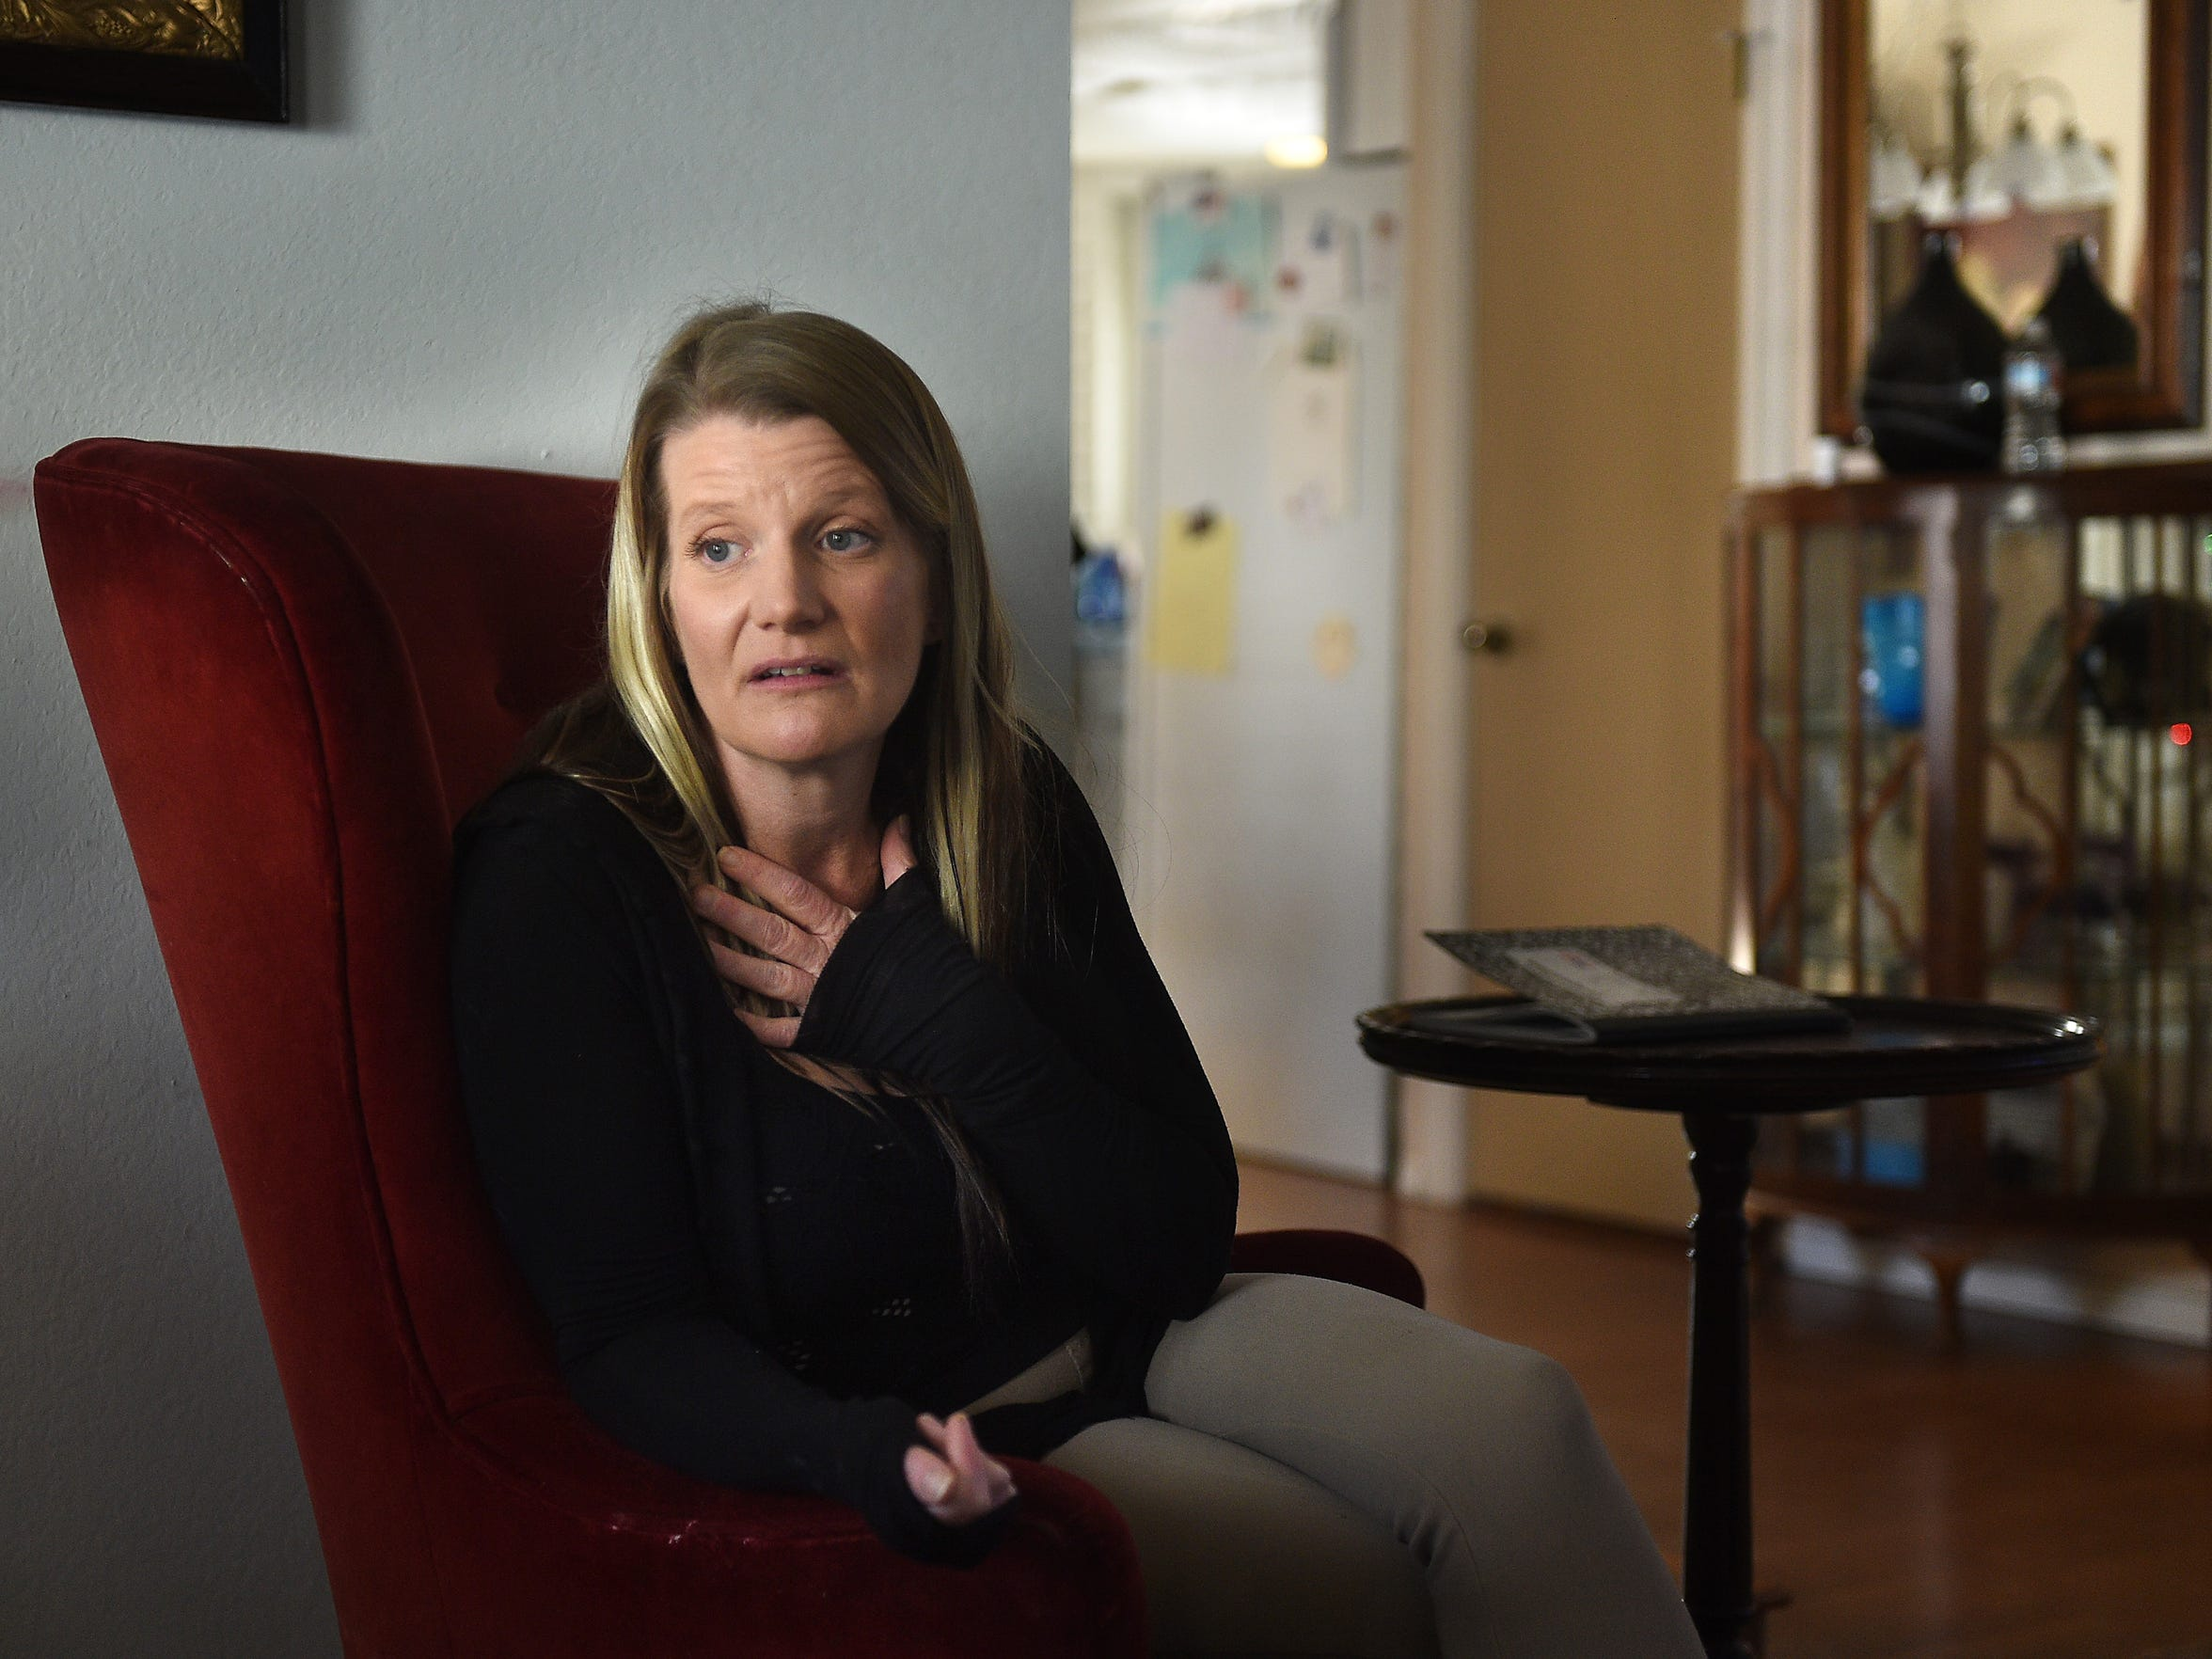 Logan Clark's mother Cheryl Pitchford speaks to the RGJ about the shooting of her son in her home in Reno on Dec. 14, 2016. Logan Clark was shot by a WCSD police officer on Dec. 7 at Hug High School.